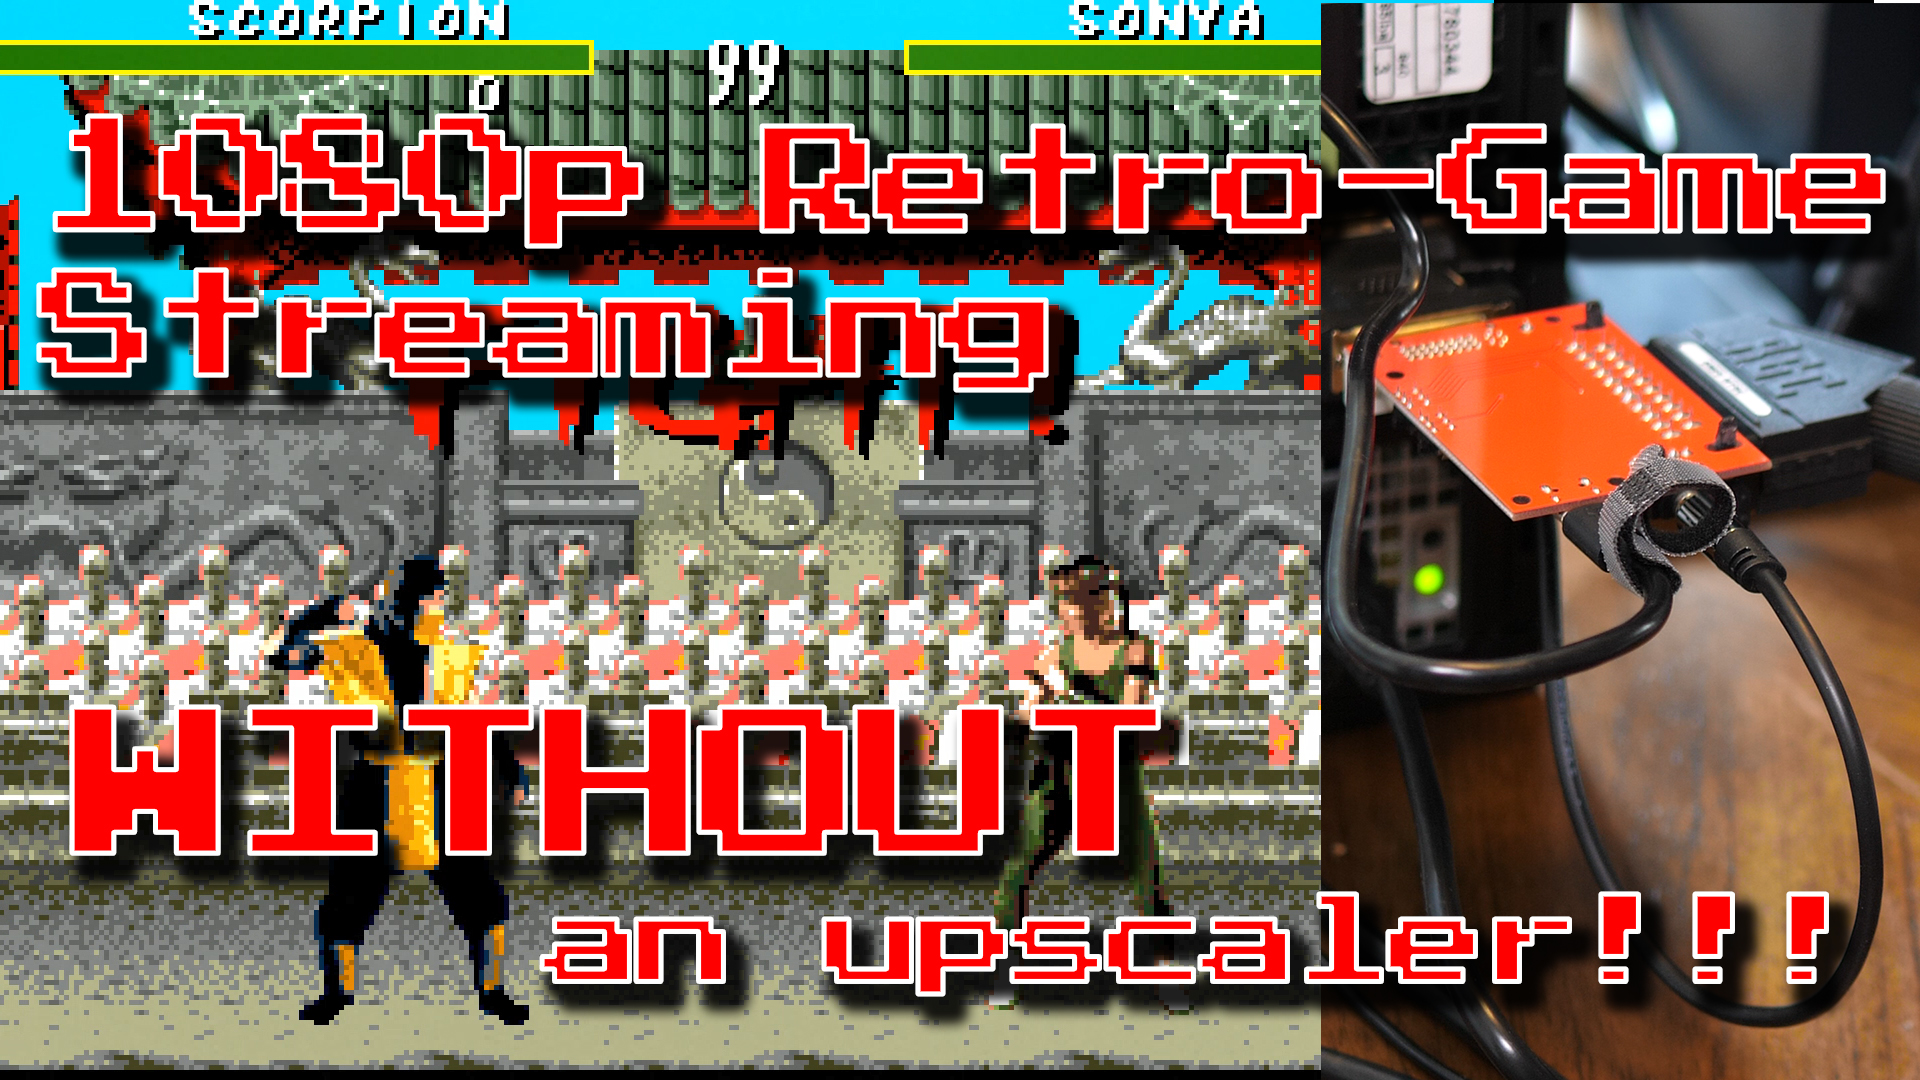 1080p Retro Streaming WITHOUT an Upscaler!